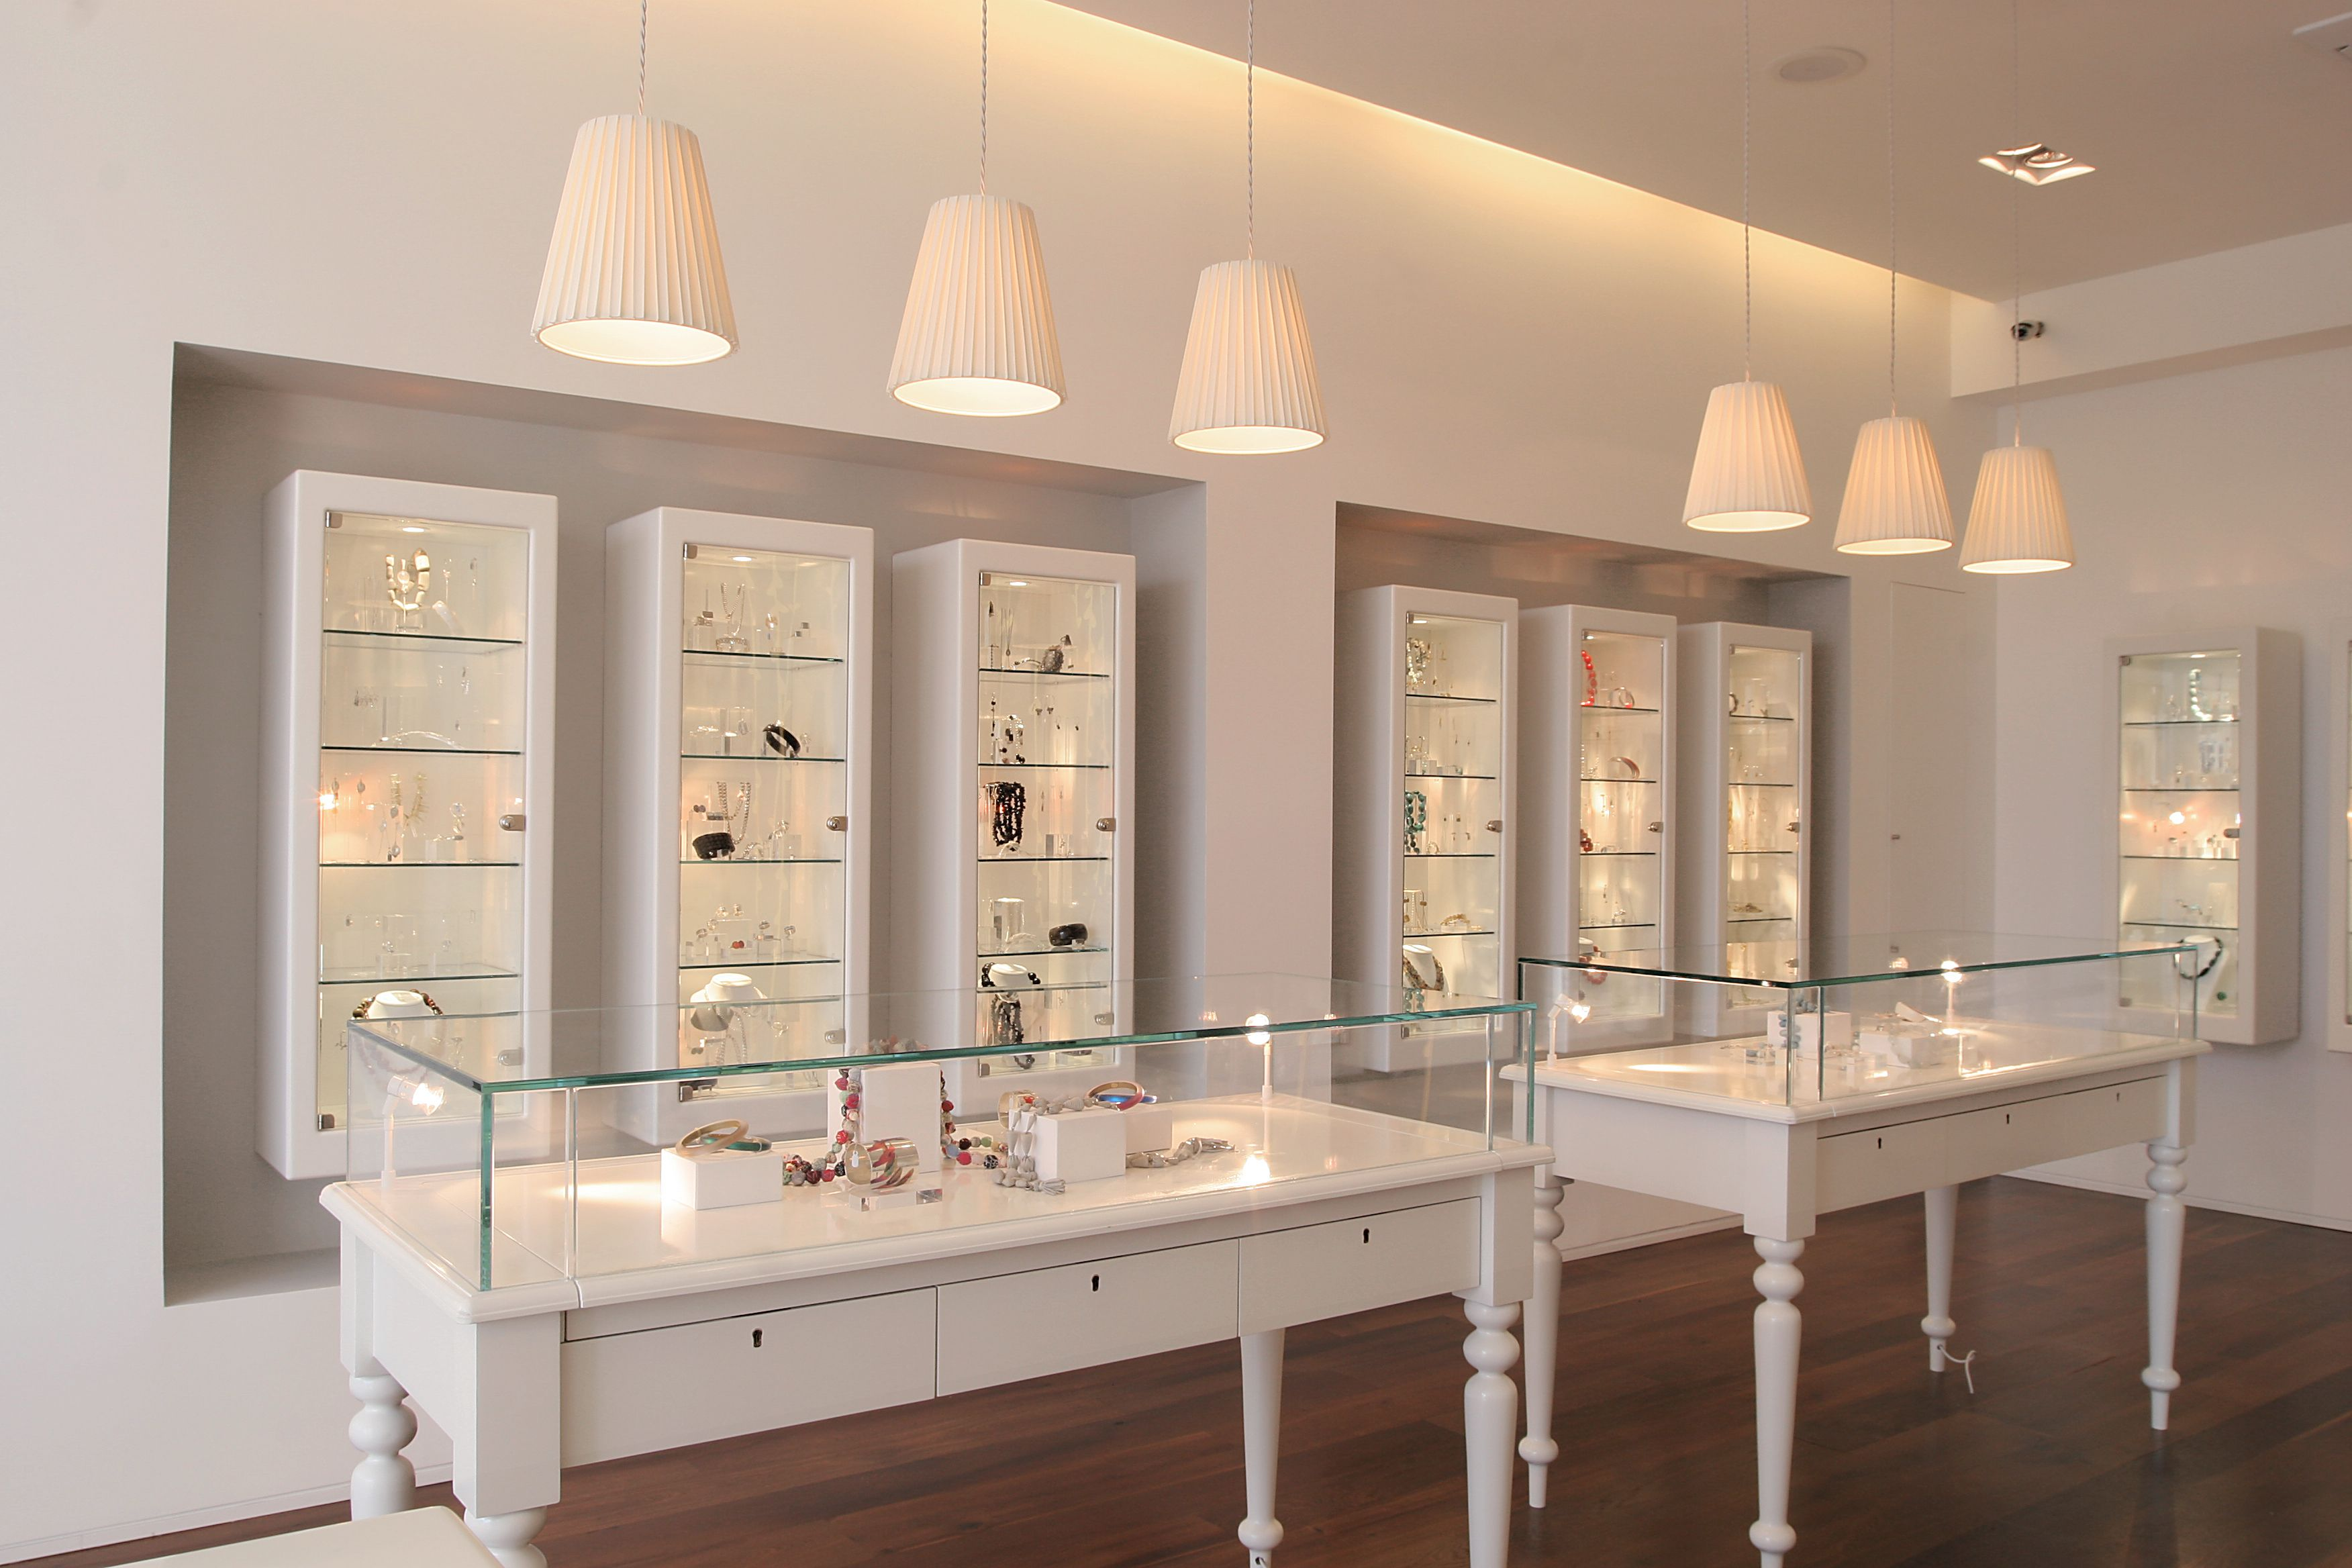 Vitrinen Deko Jewellery Display Cabinets Jewellery Shop Schmuck